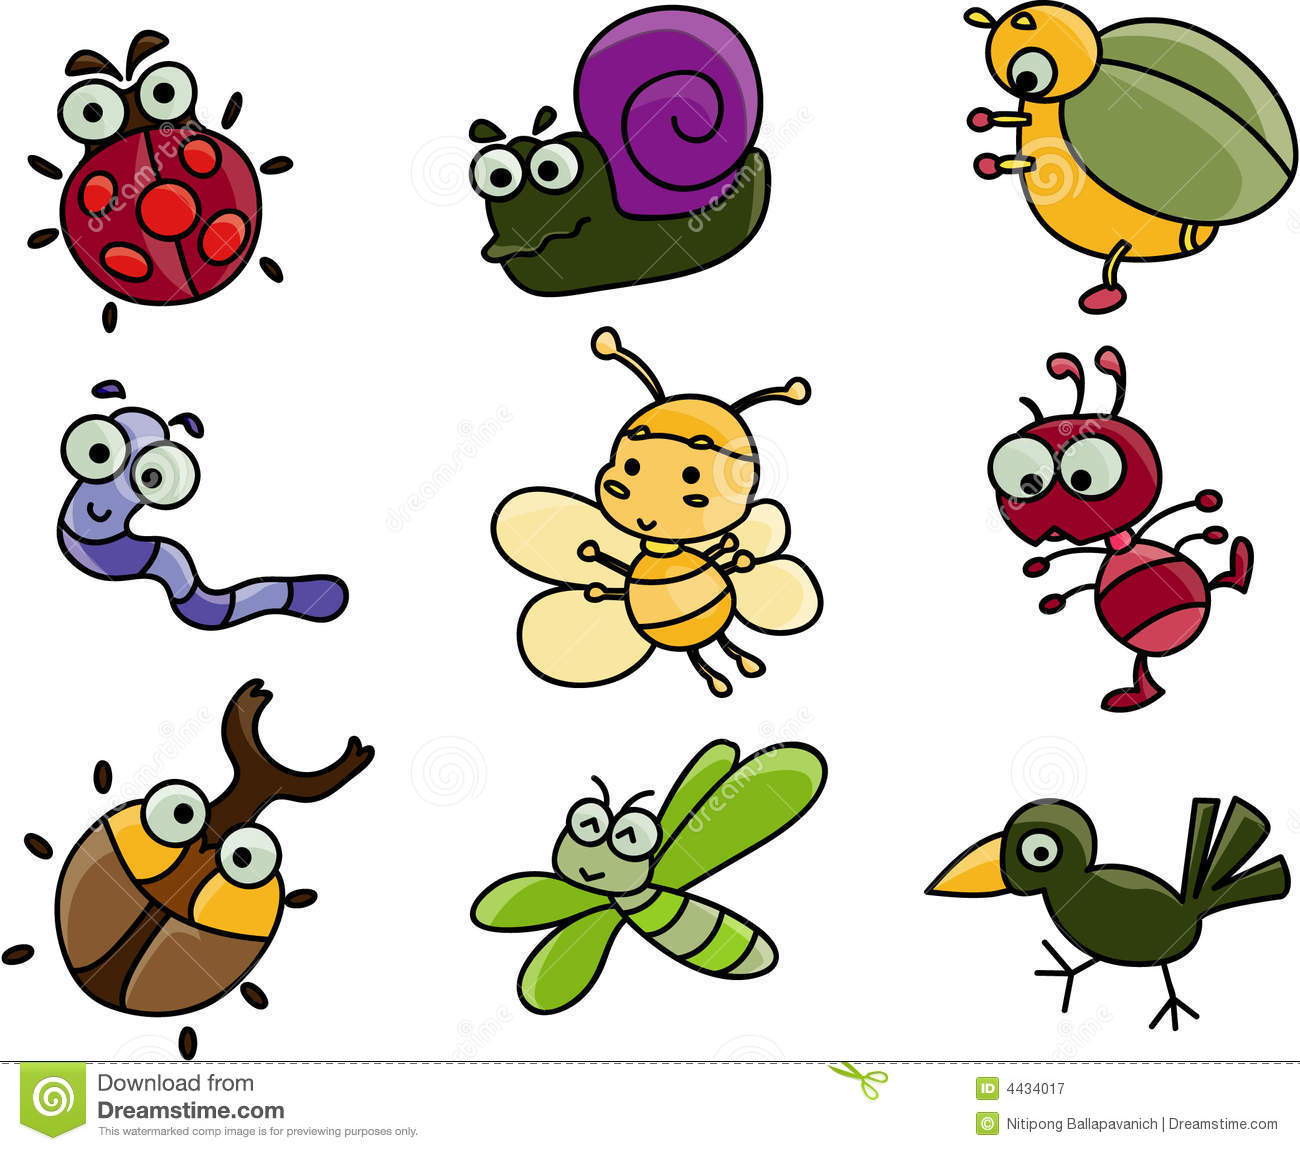 Beelte clipart cute Insects Cartoon Collection Clipart Bug